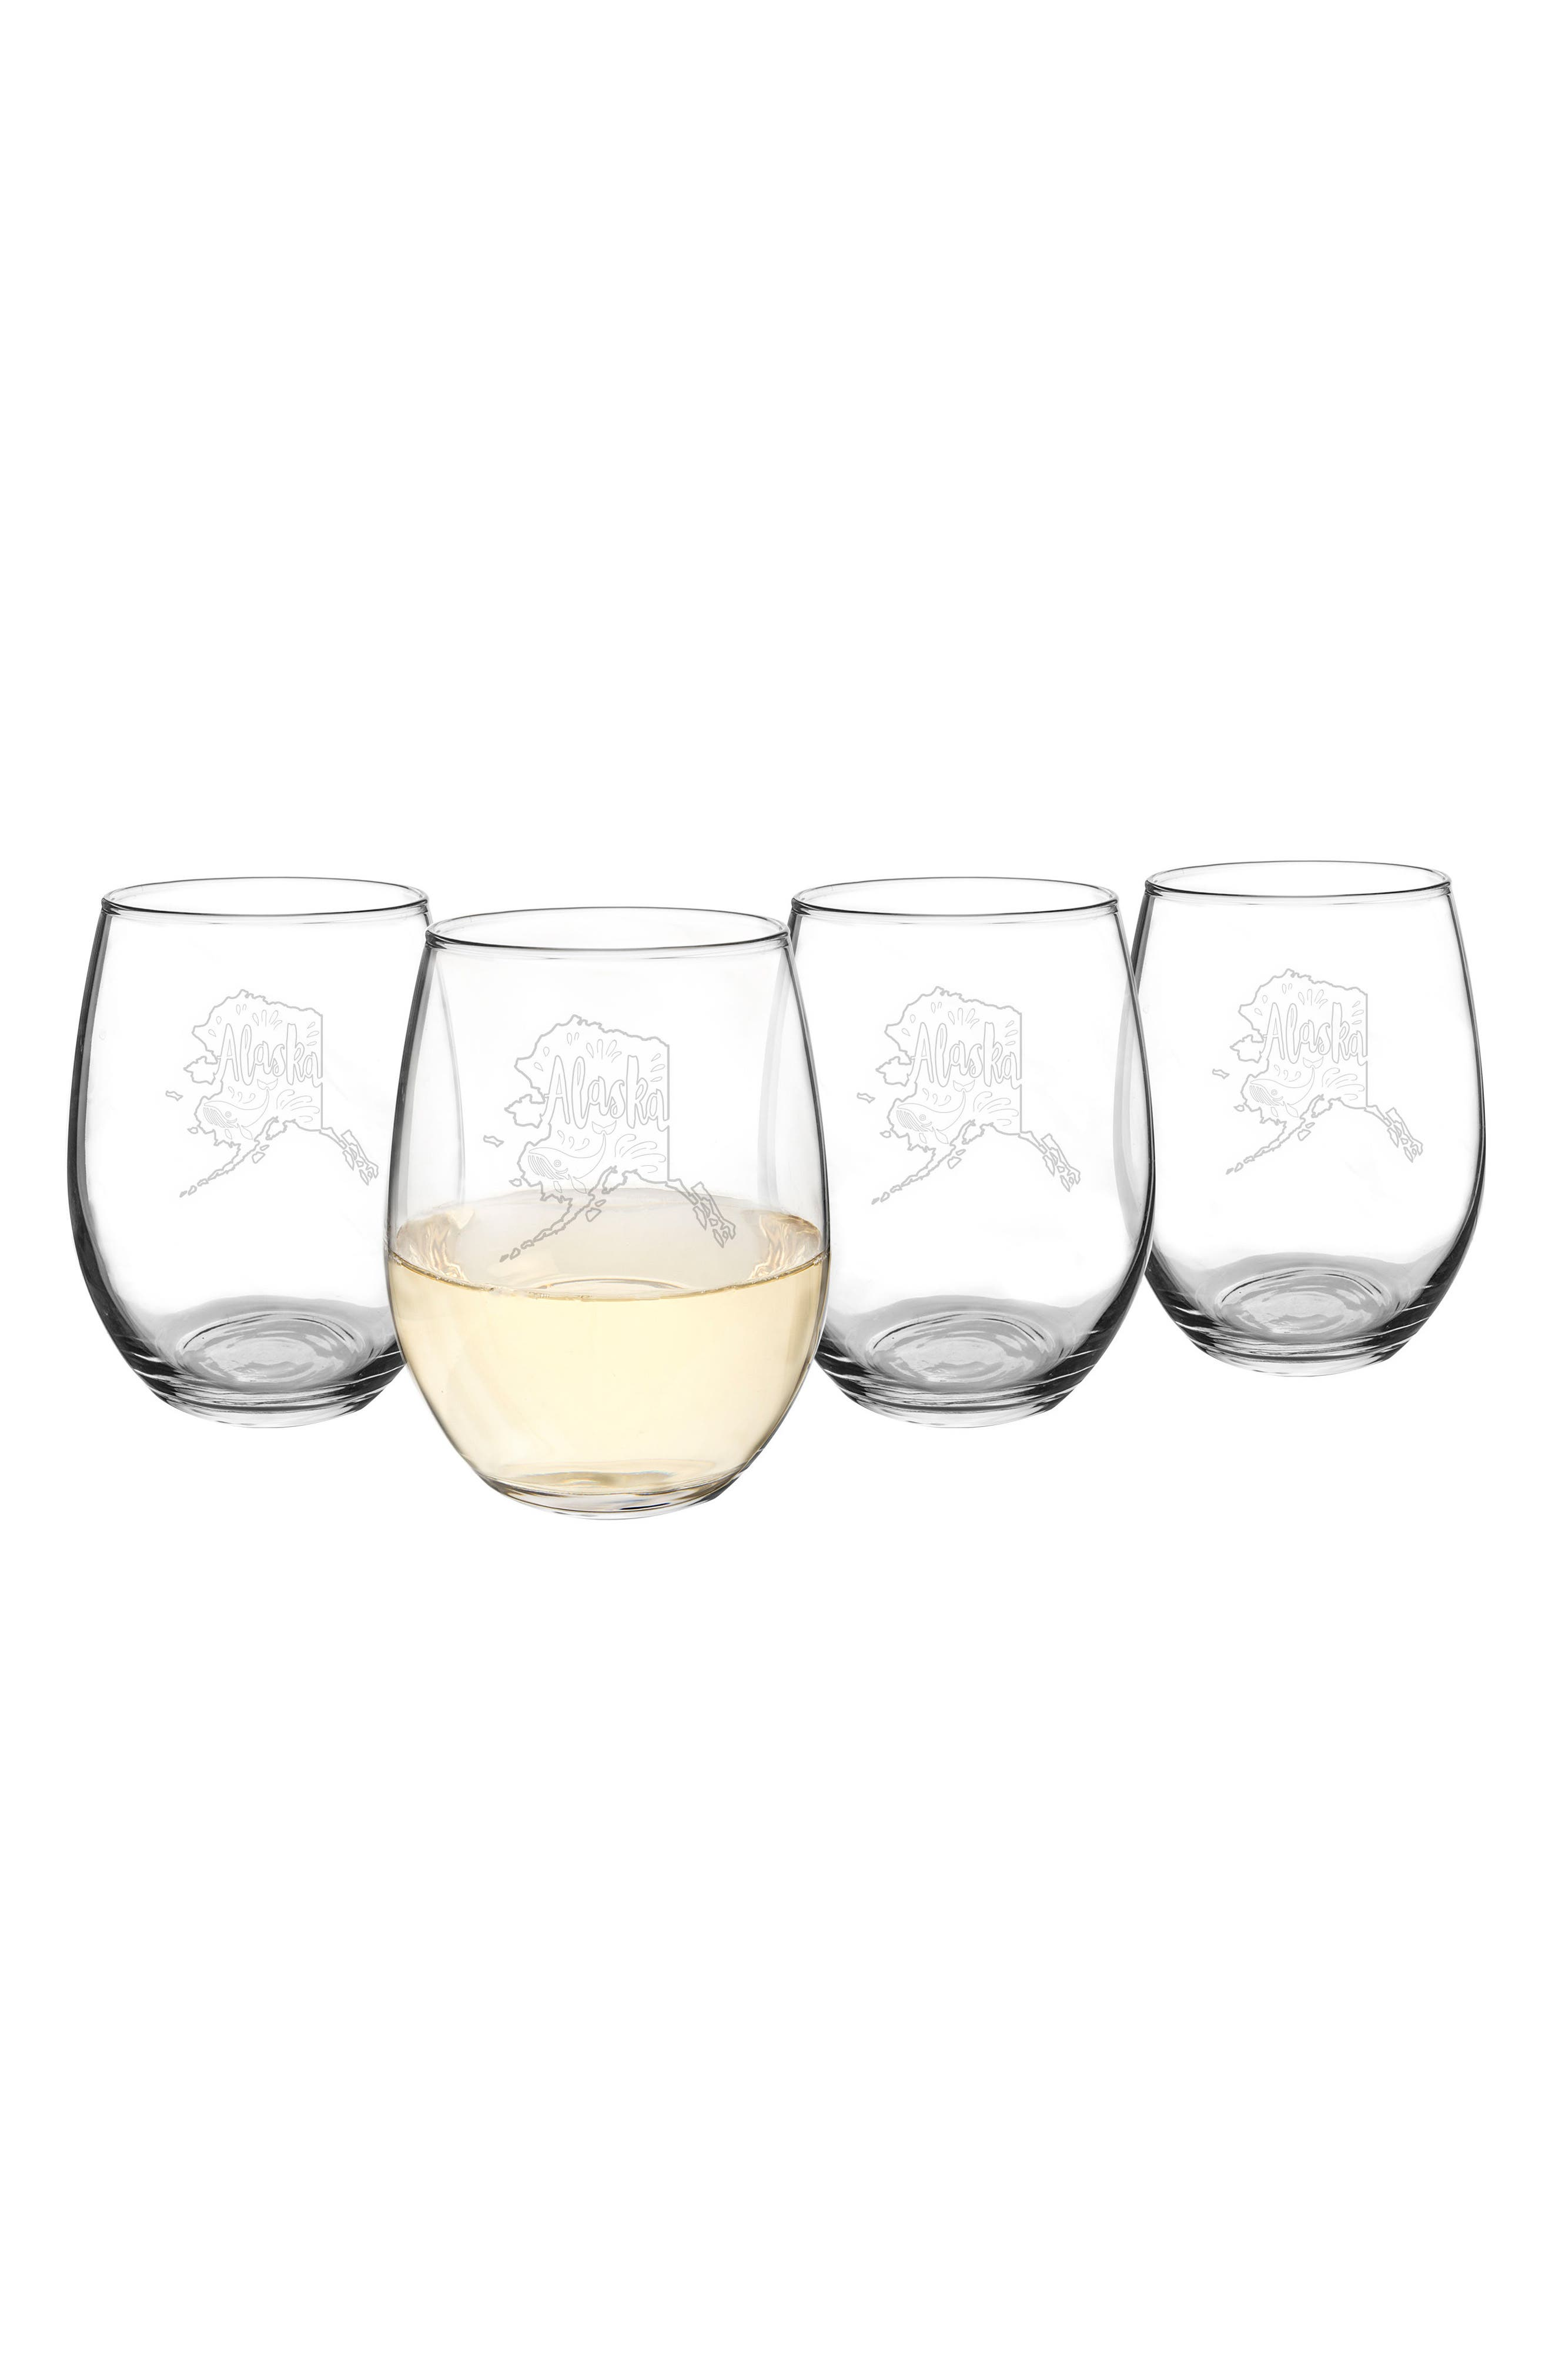 State Set of 4 Stemless Wine Glasses,                             Main thumbnail 1, color,                             100